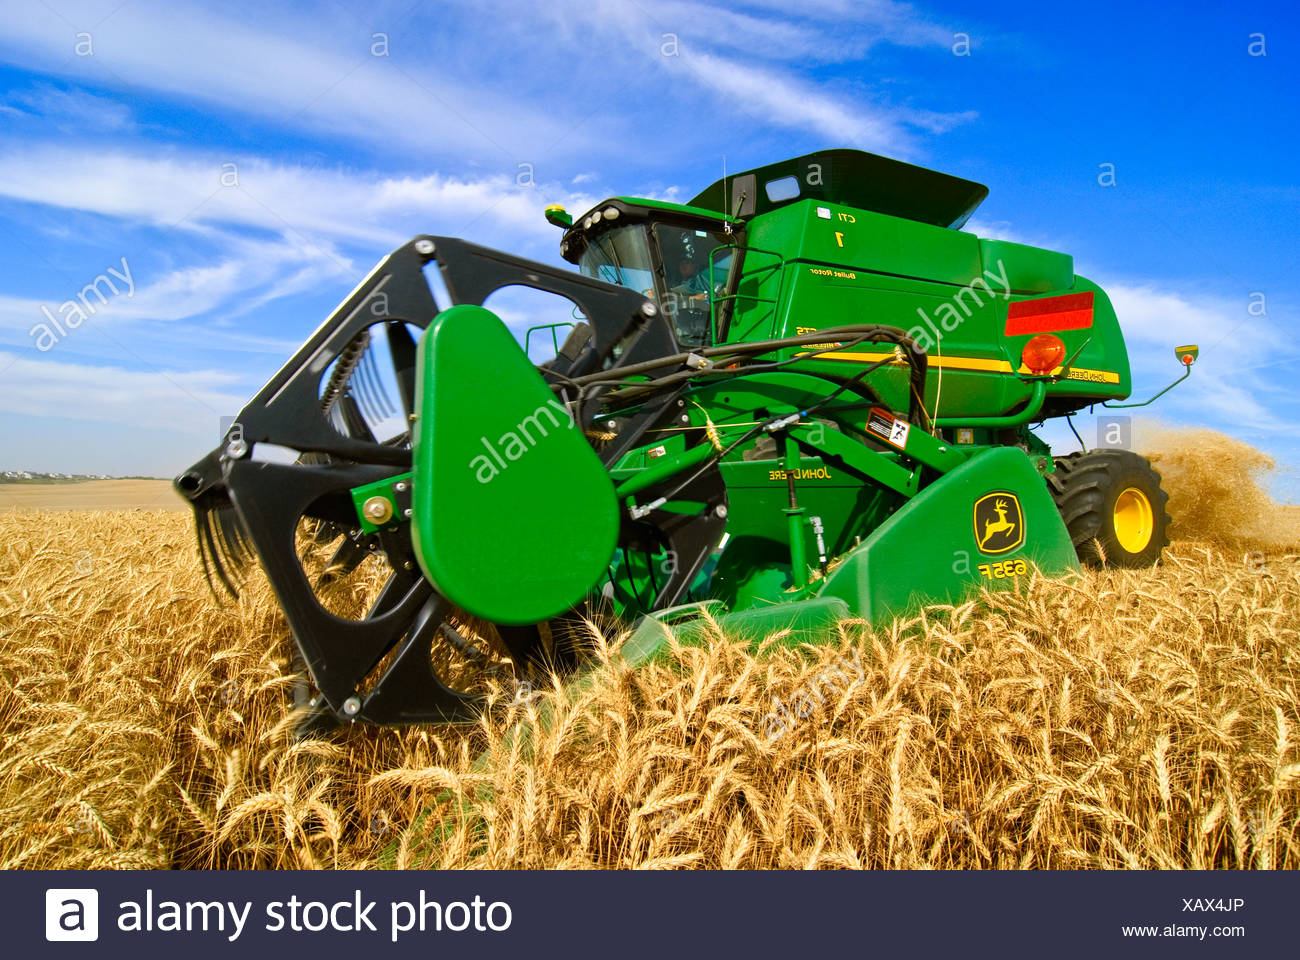 Agriculture - Close up of a John Deere combine harvesting wheat in the Palouse region / near Pullman, Washington, USA. - Stock Image